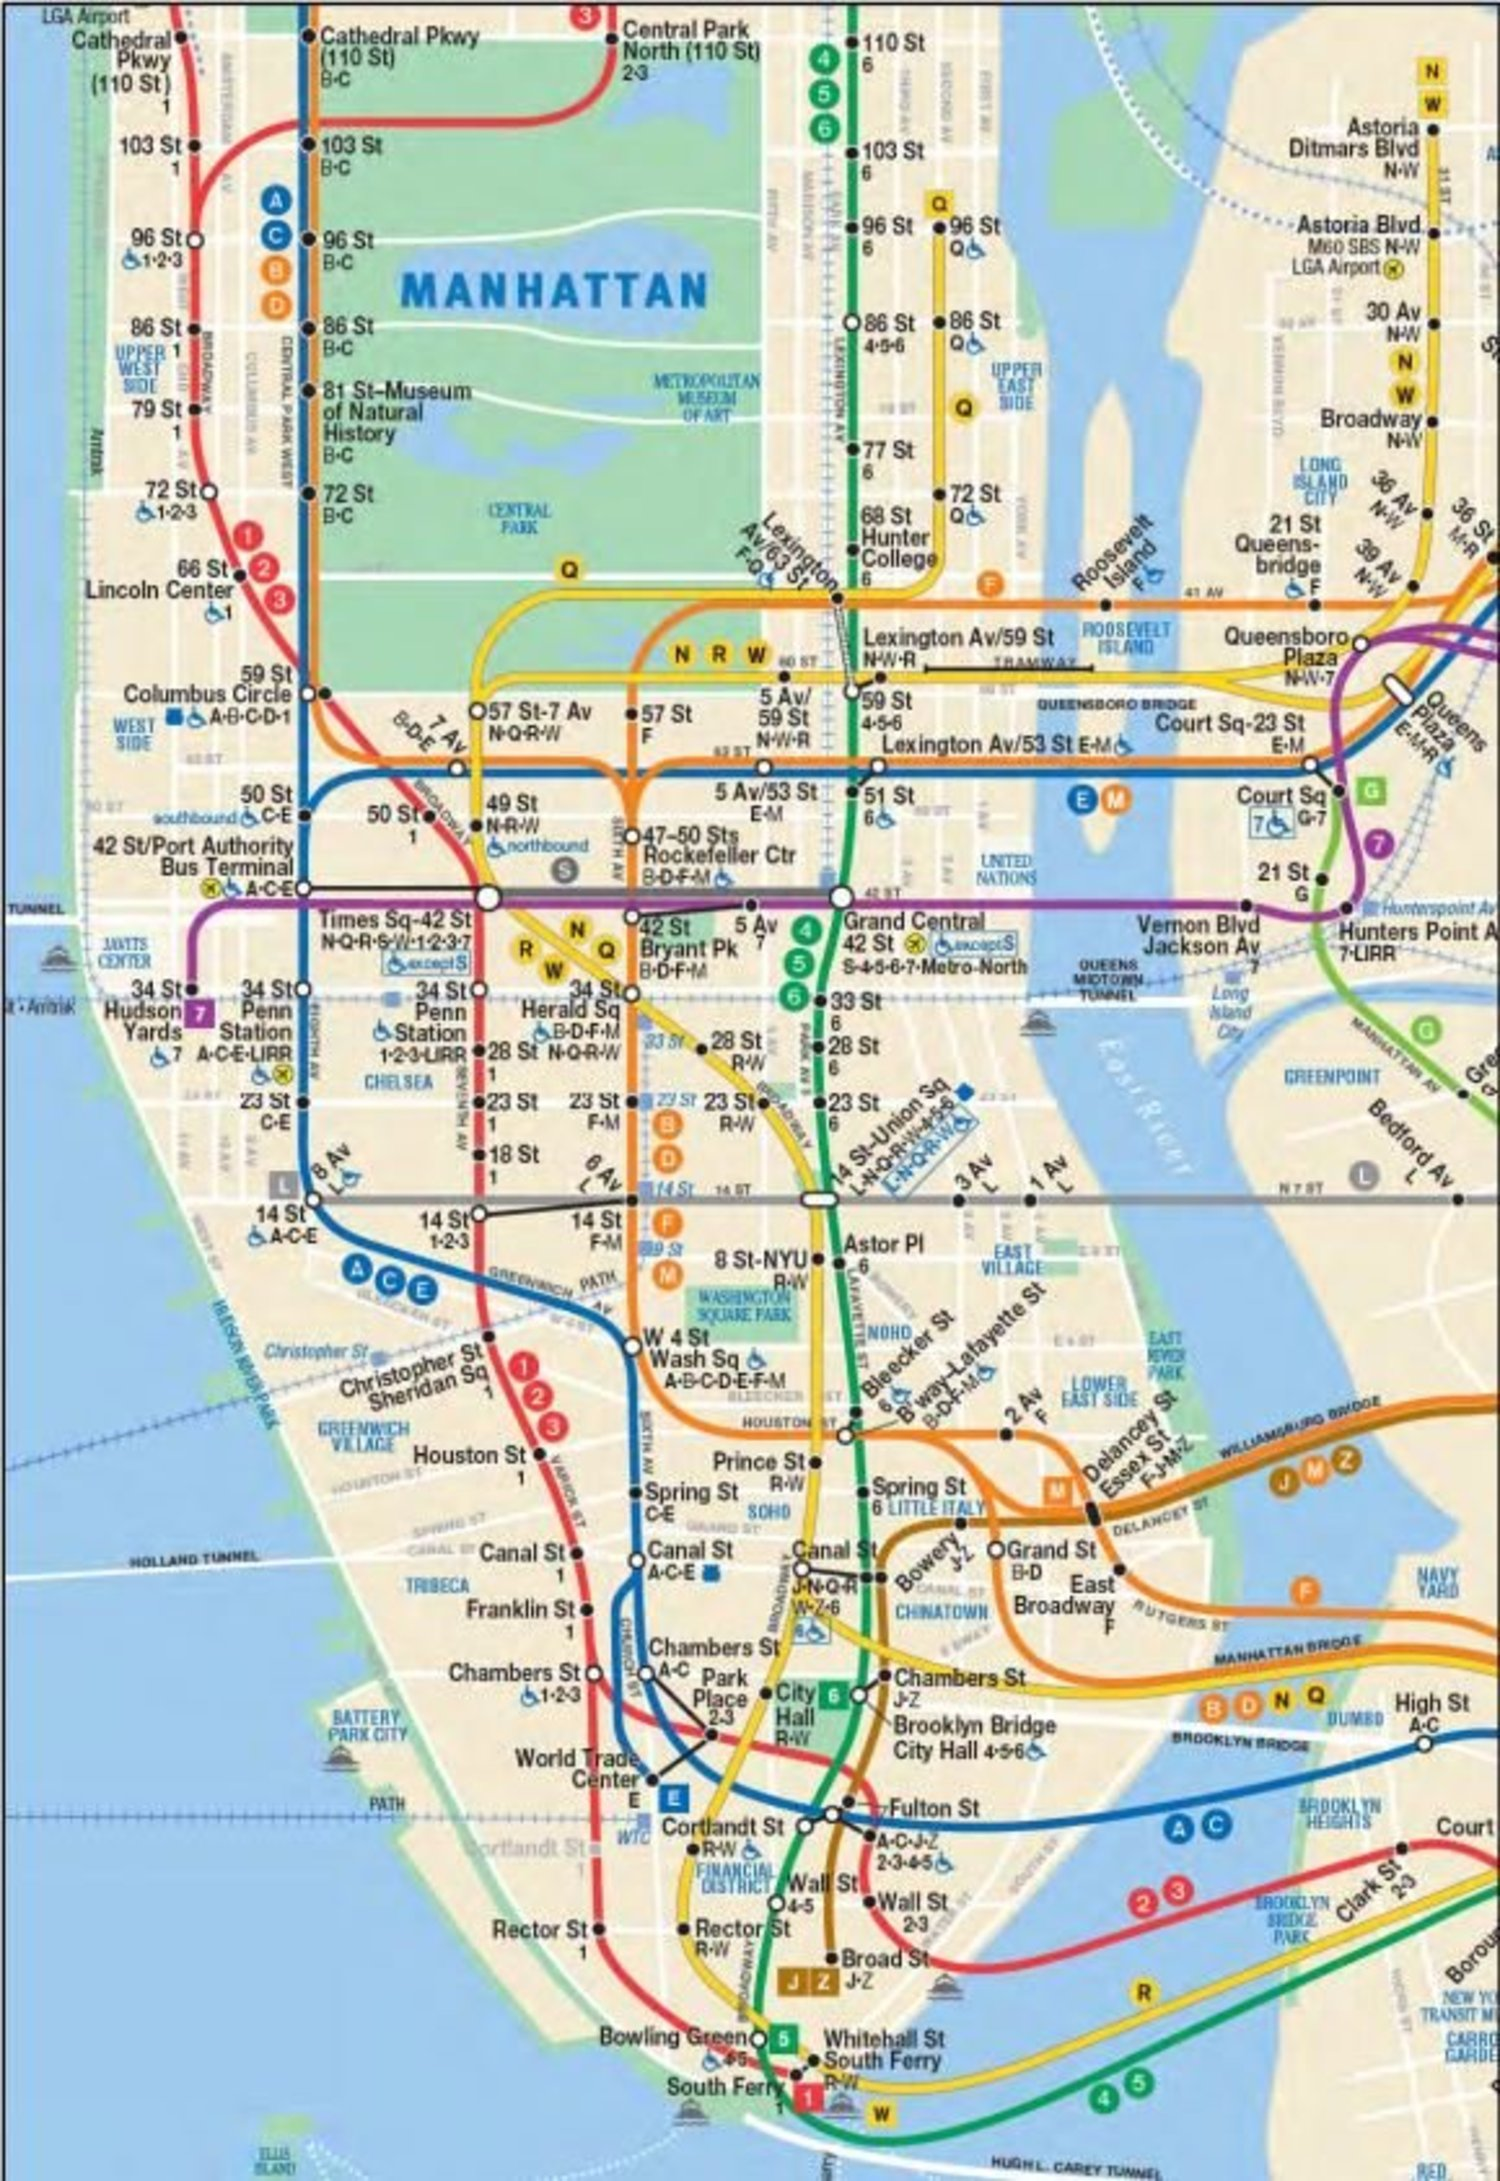 B Train Map Map Shows Subway Map Updated For 2nd Ave Subway and Restored W  B Train Map